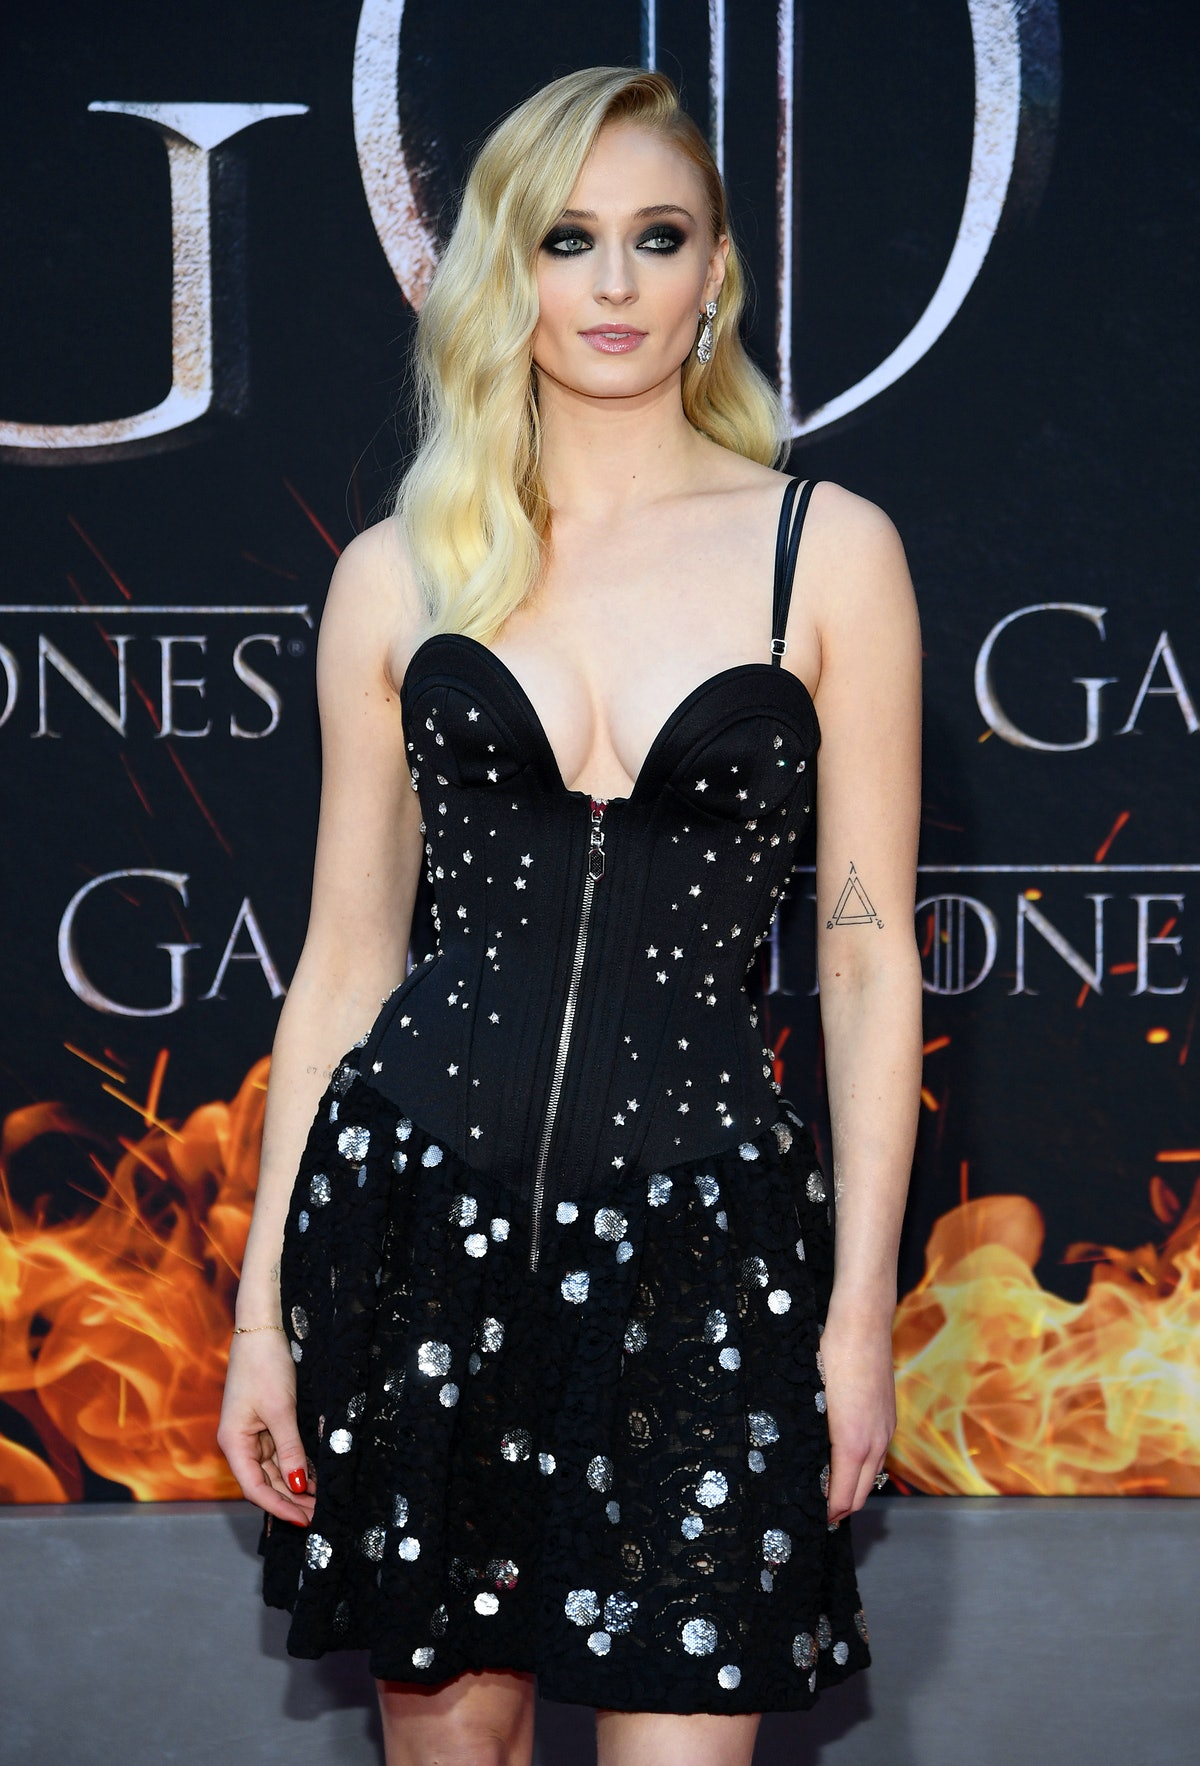 'Game Of Thrones' Star Sophie Turner Talked About Her Struggle With Body Image & The Importance Of Therapy